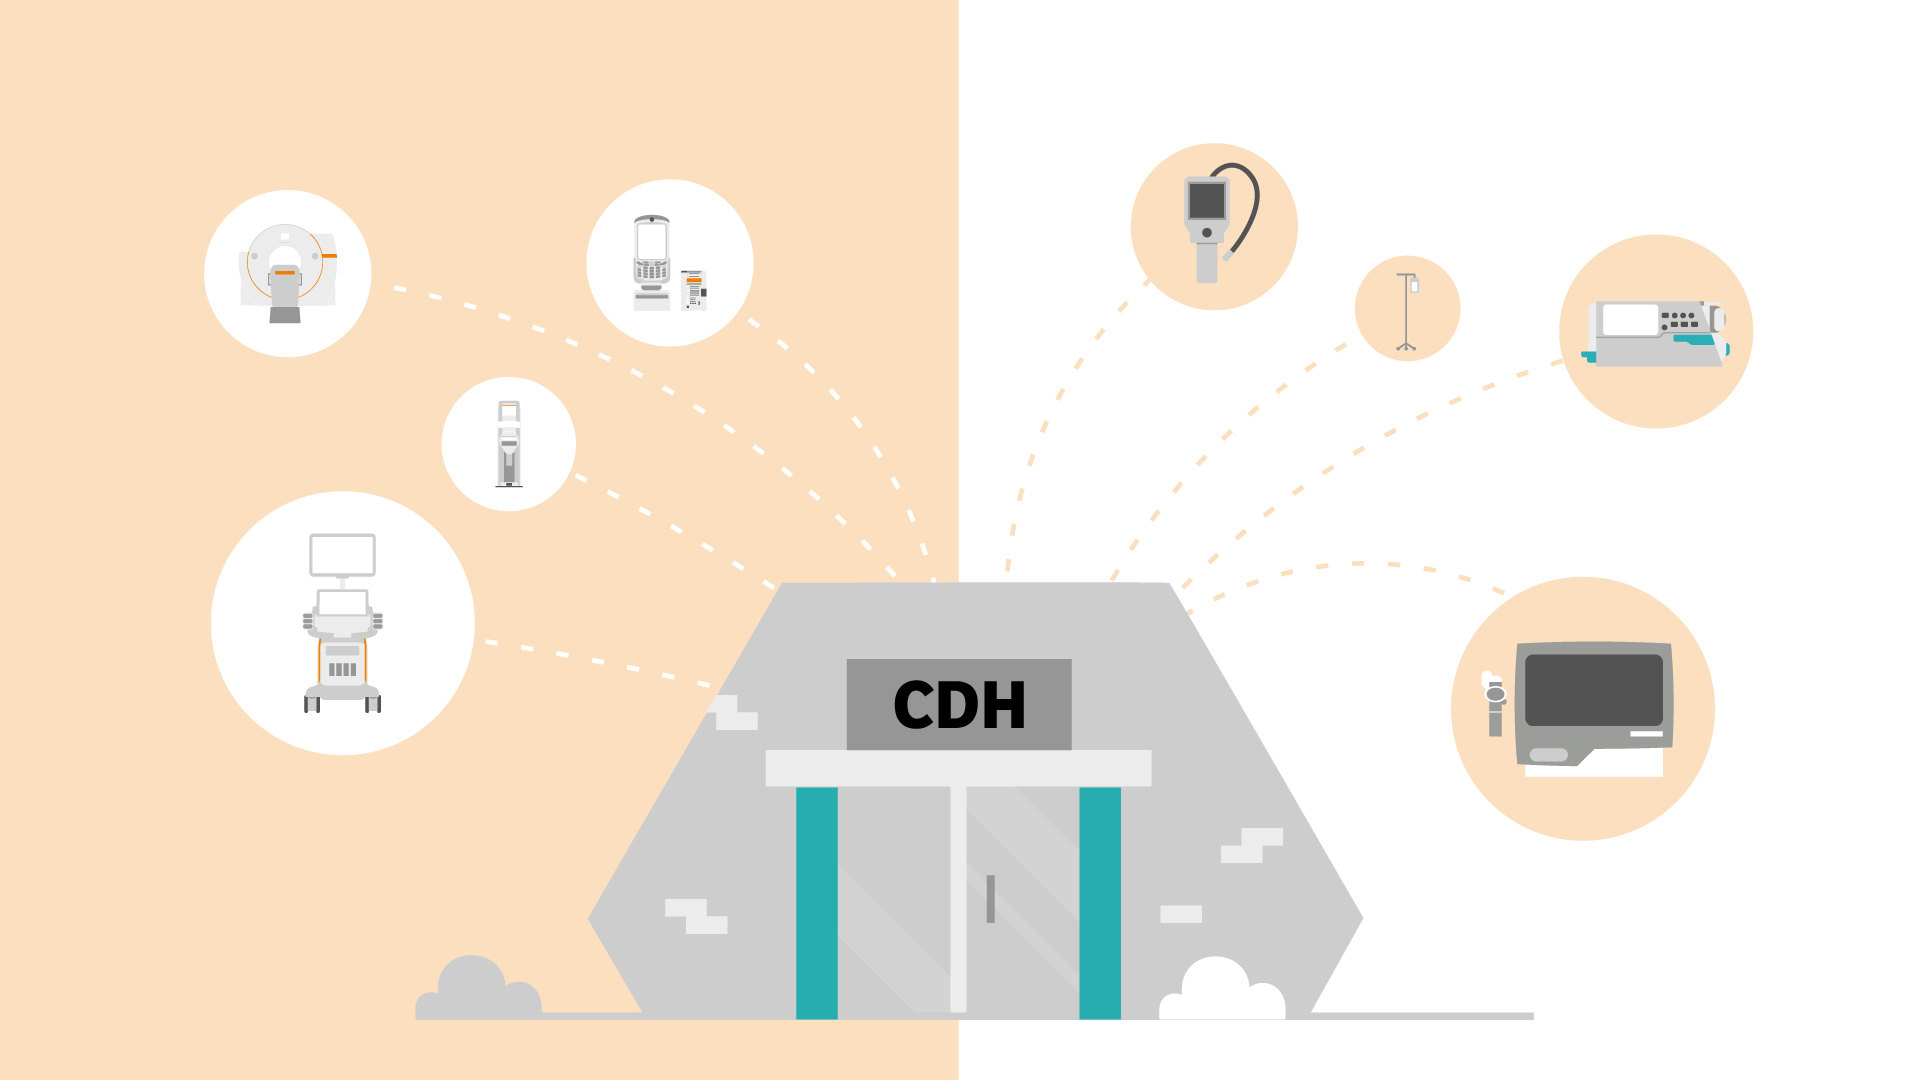 A journey of diagnostic transformation starts with community hubs